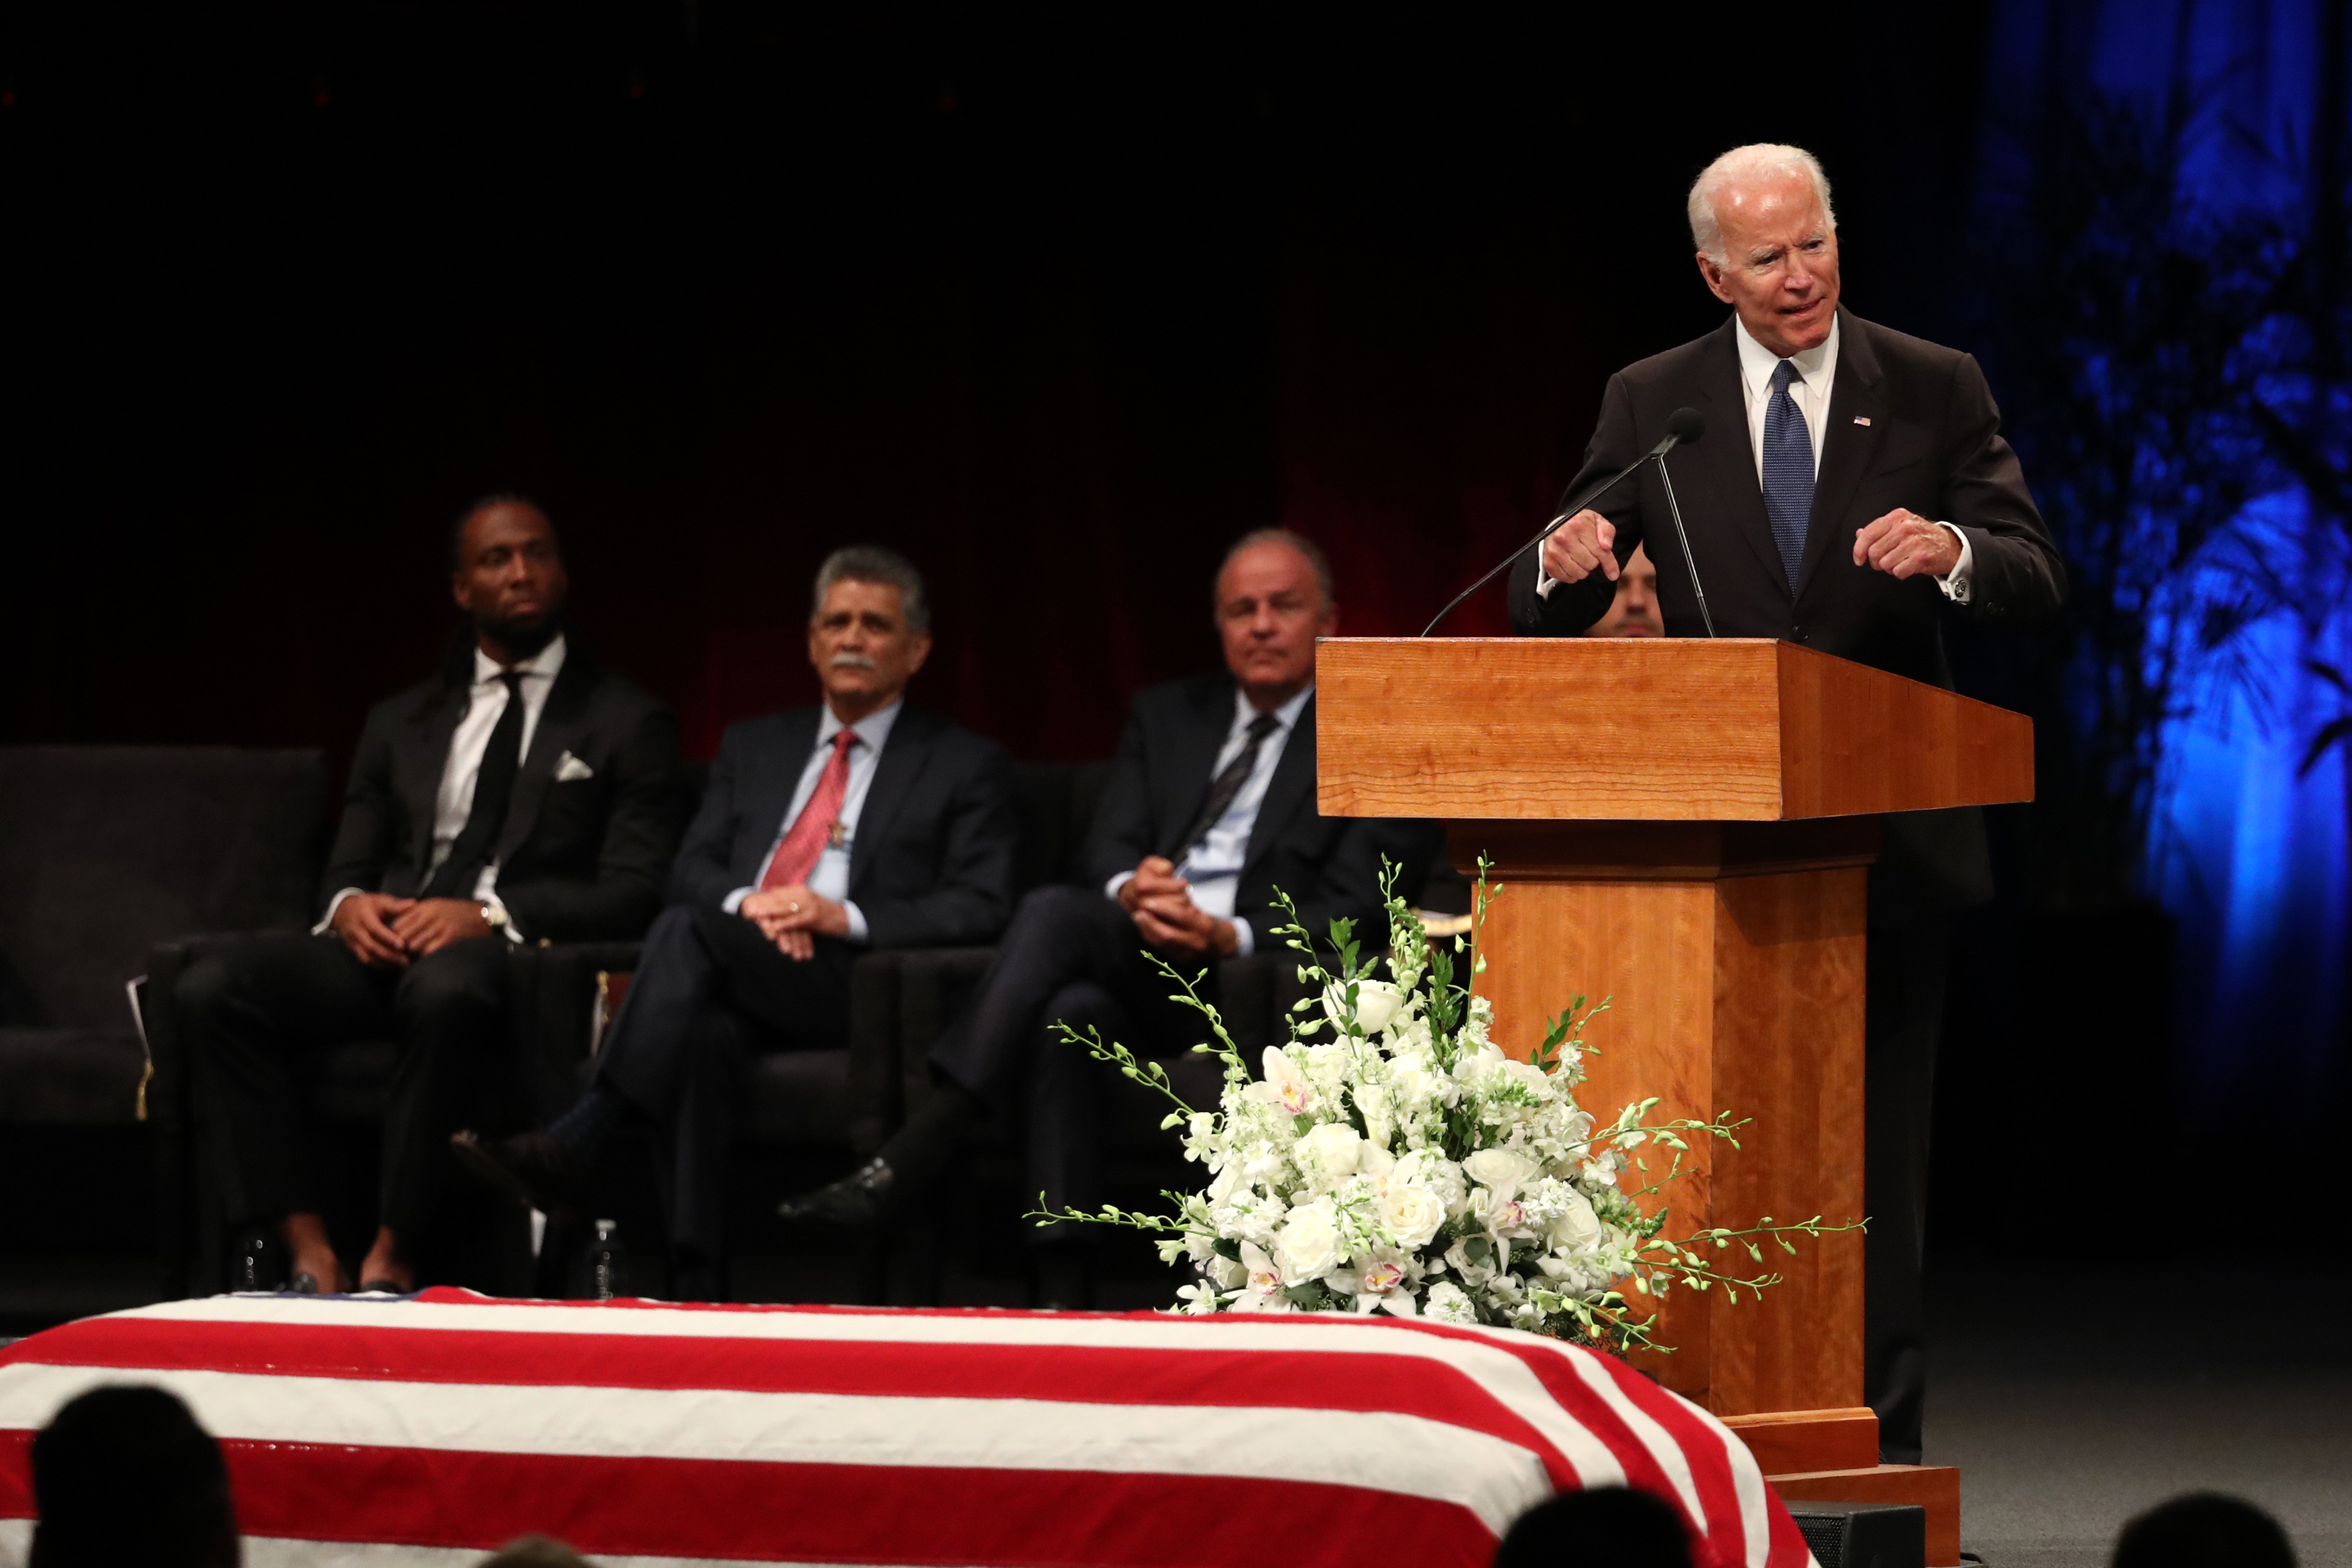 Former U.S. Vice President Joe Biden speaks during a memorial service to celebrate the life of of U.S. Sen. John McCain at the North Phoenix Baptist Church on August 30, 2018 in Phoenix, Arizona. Thousands are expected for the memorial which will include tributes and readings for the late senator who died August 25 at the age of 81 after a long battle with Glioblastoma, a form of brain cancer.